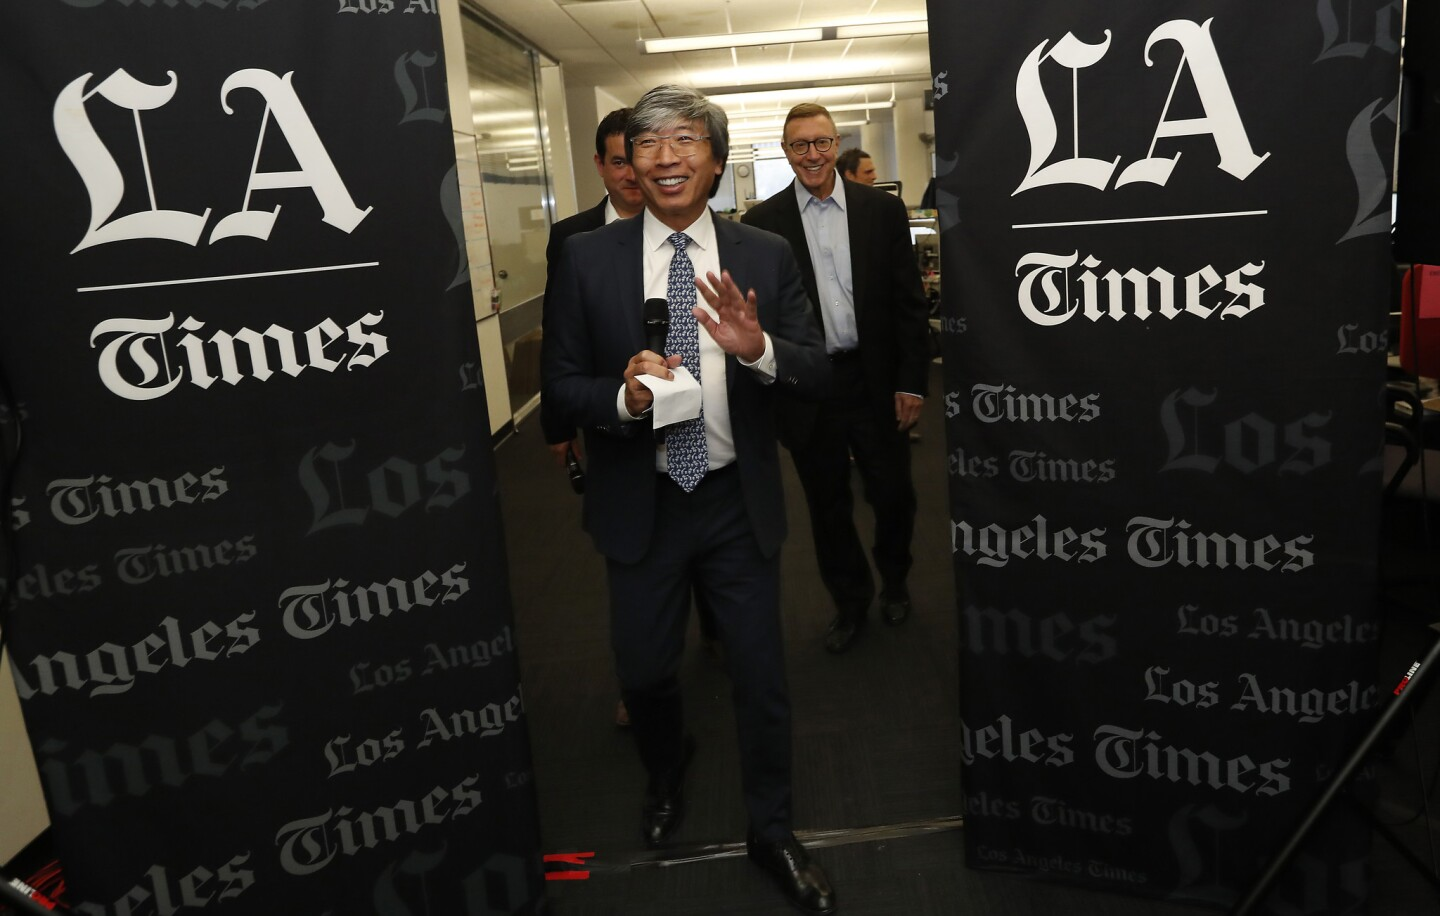 Dr. Patrick Soon-Shiong begins new era for L.A. Times